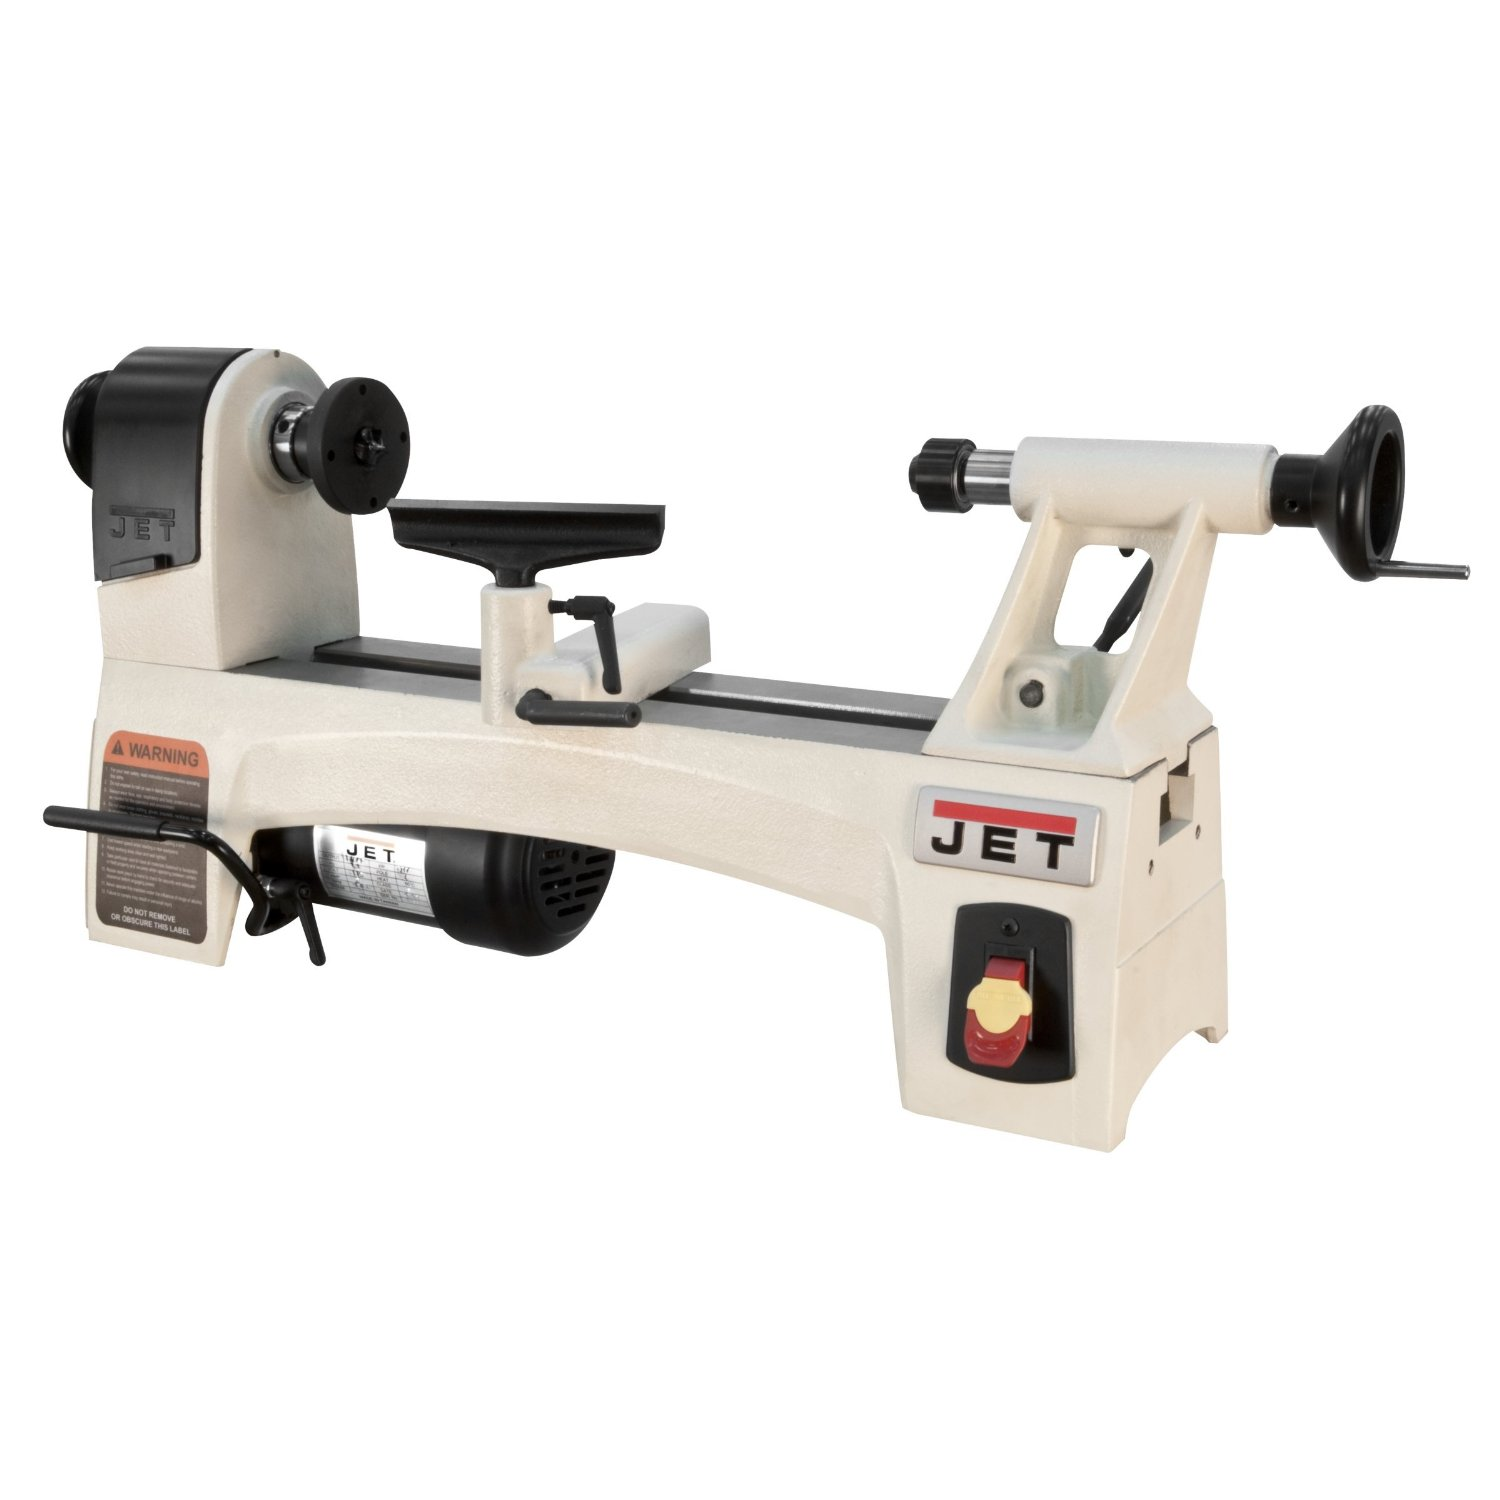 Jet Jwl 1015 Woodworking Lathe Review The Basic Woodworking